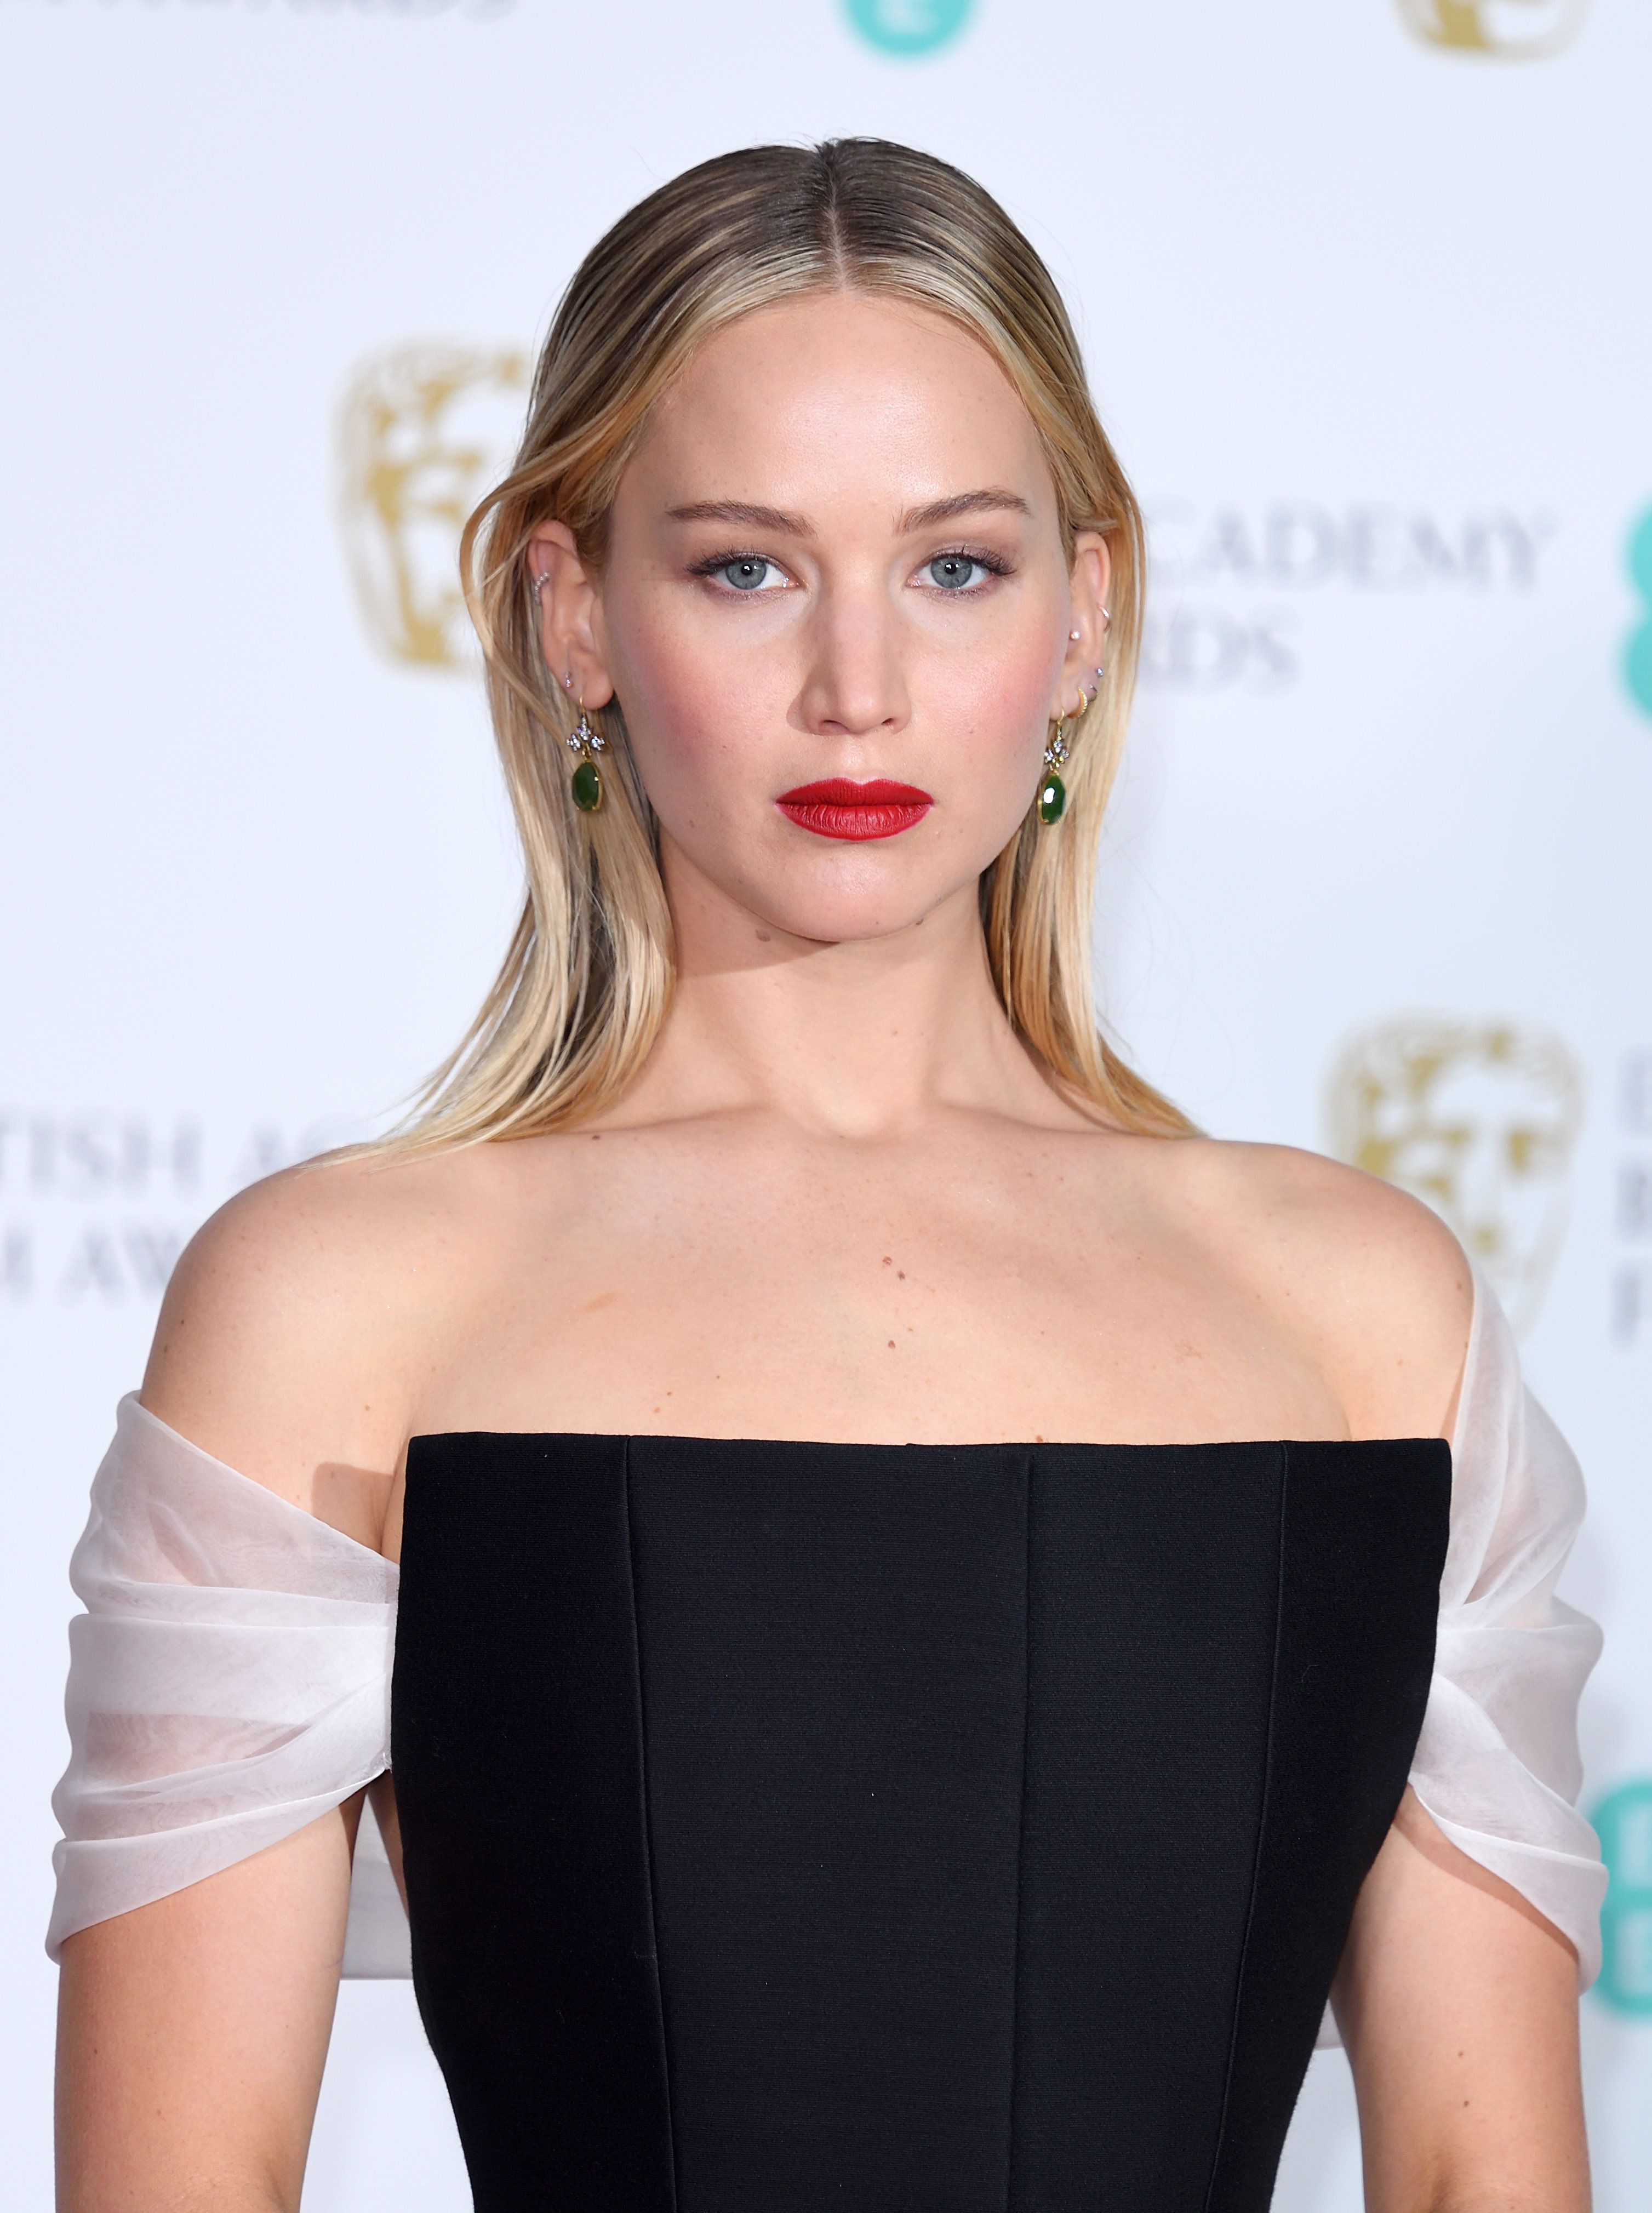 LONDON, ENGLAND - FEBRUARY 18:  Jennifer Lawrence poses in the press room during the EE British Academy Film Awards (BAFTAs) held at the Royal Albert Hall on February 18, 2018 in London, England.  (Photo by Karwai Tang/WireImage)